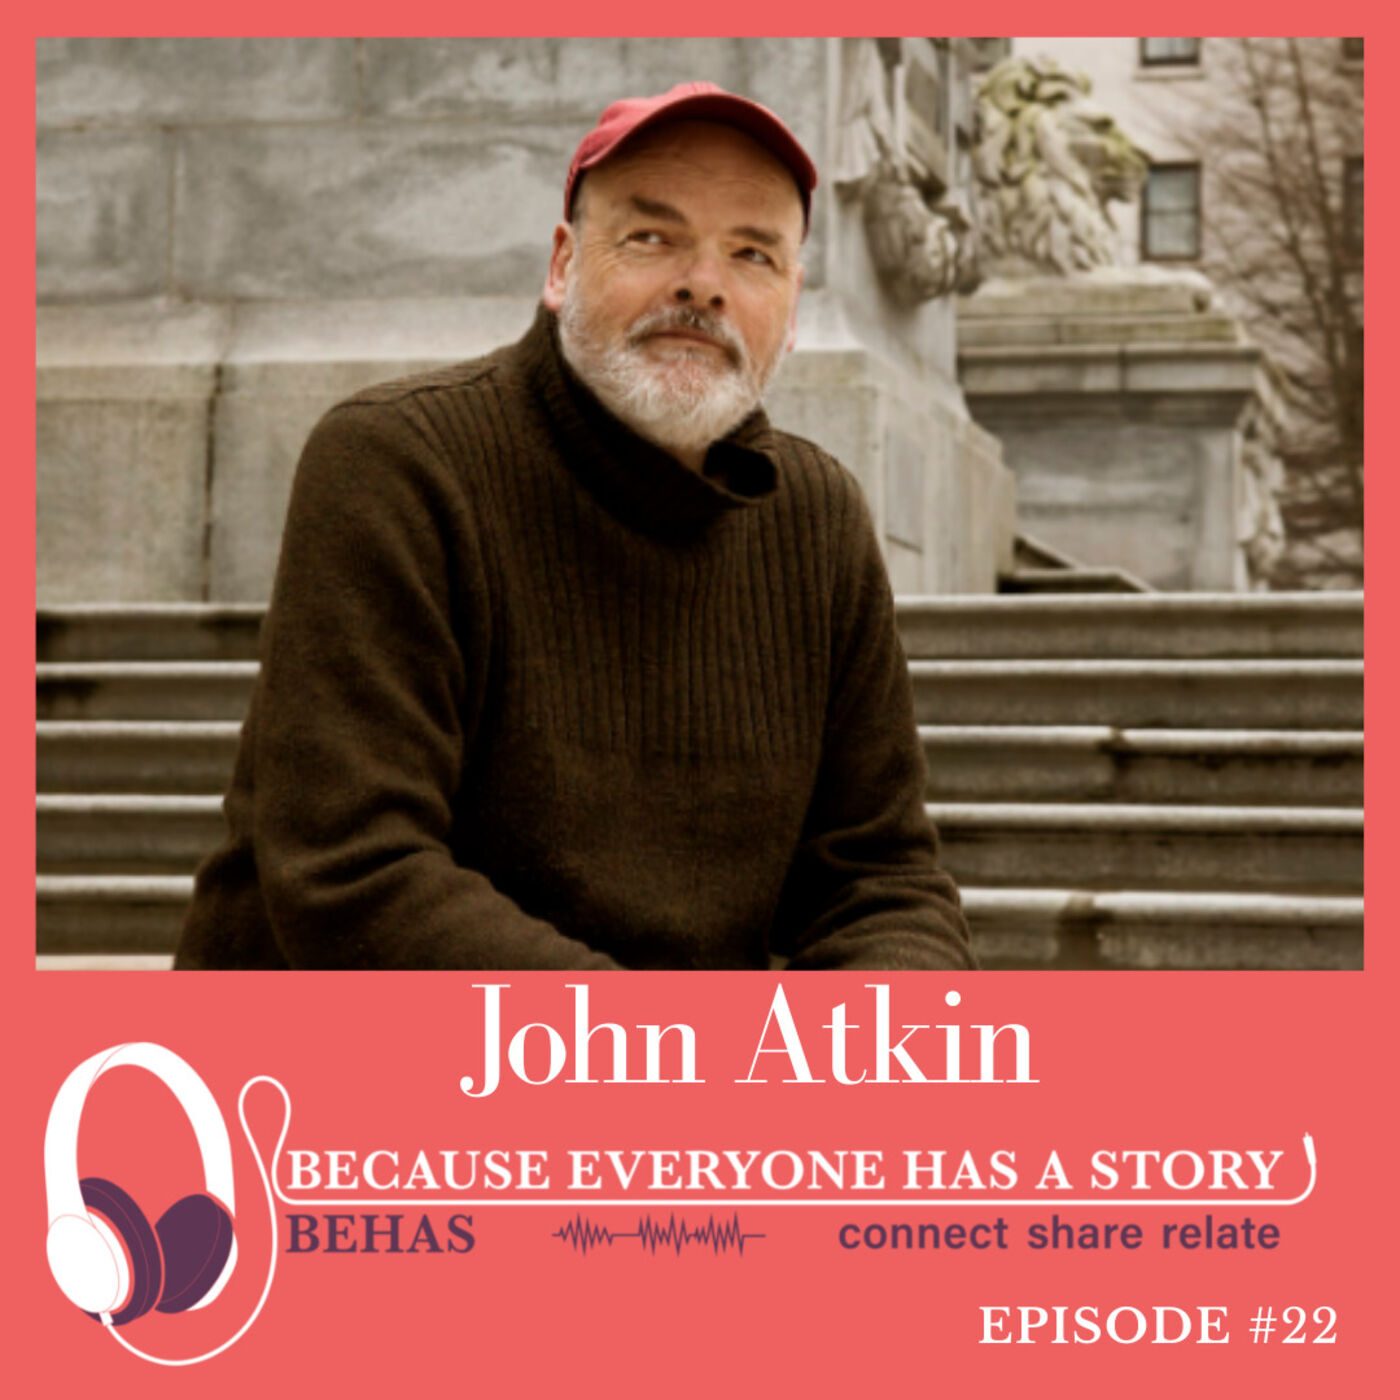 #21 - A Civic Historian With An Unquenchable Curiosity – John Atkin